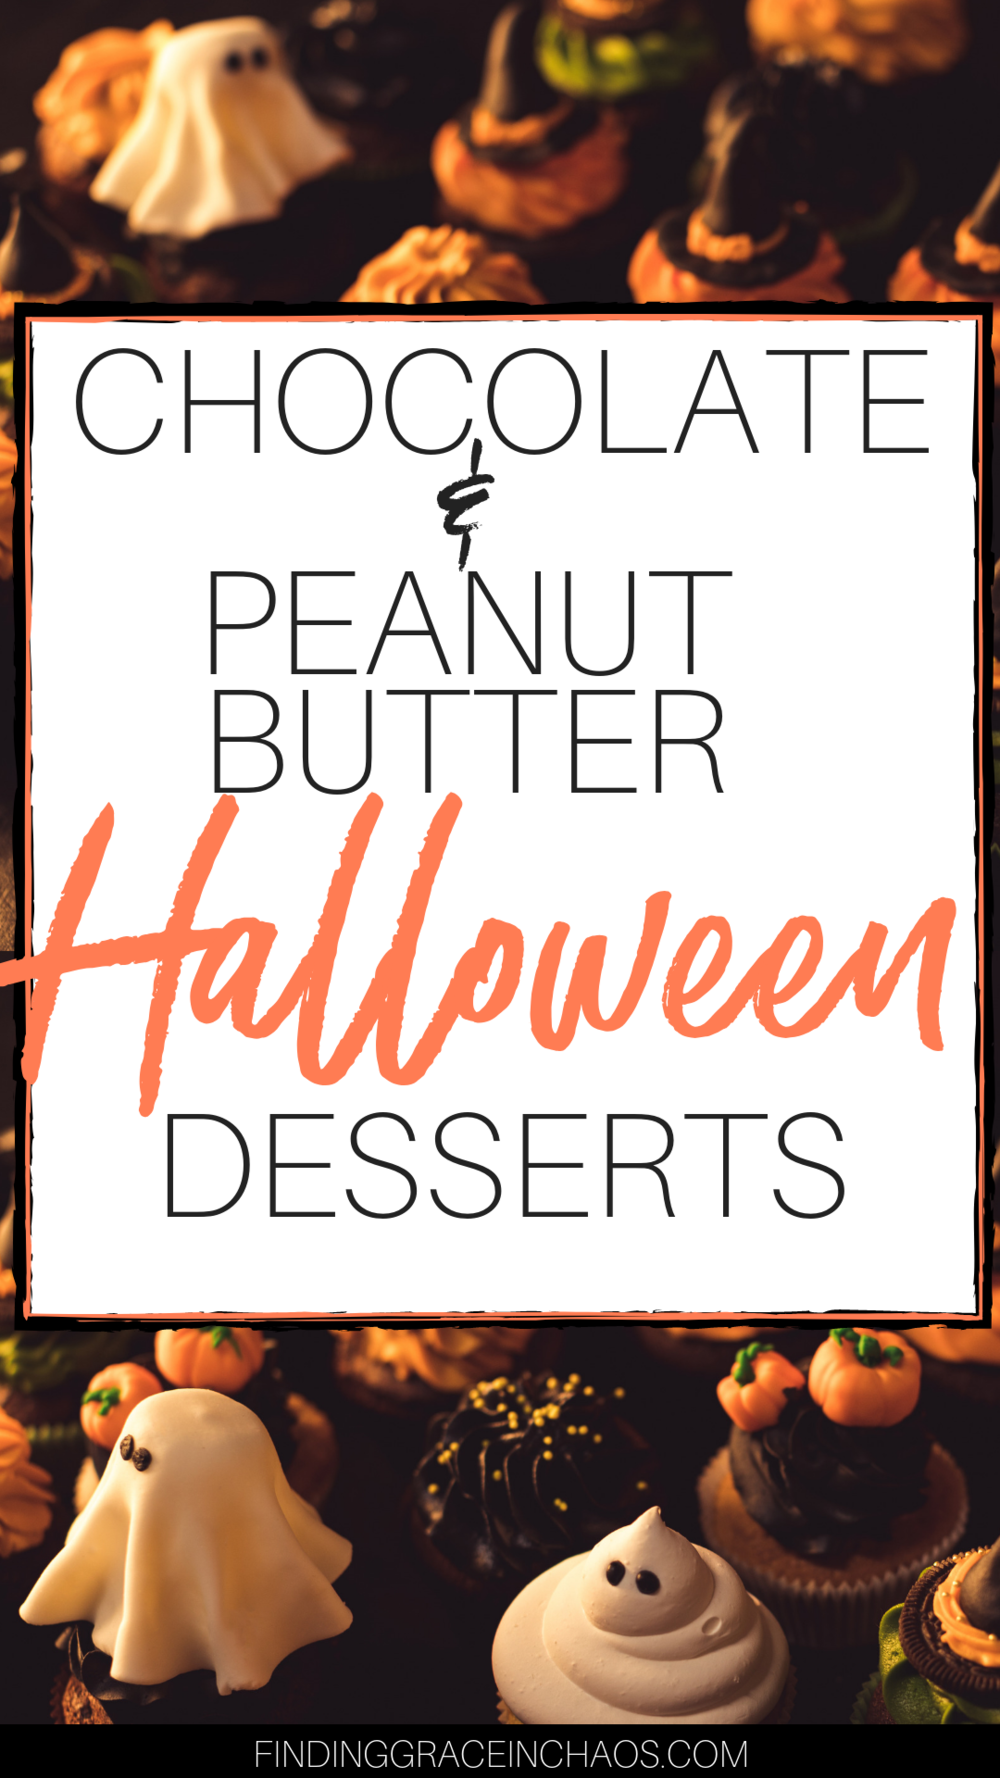 chocolate and peanut butter desserts for halloween